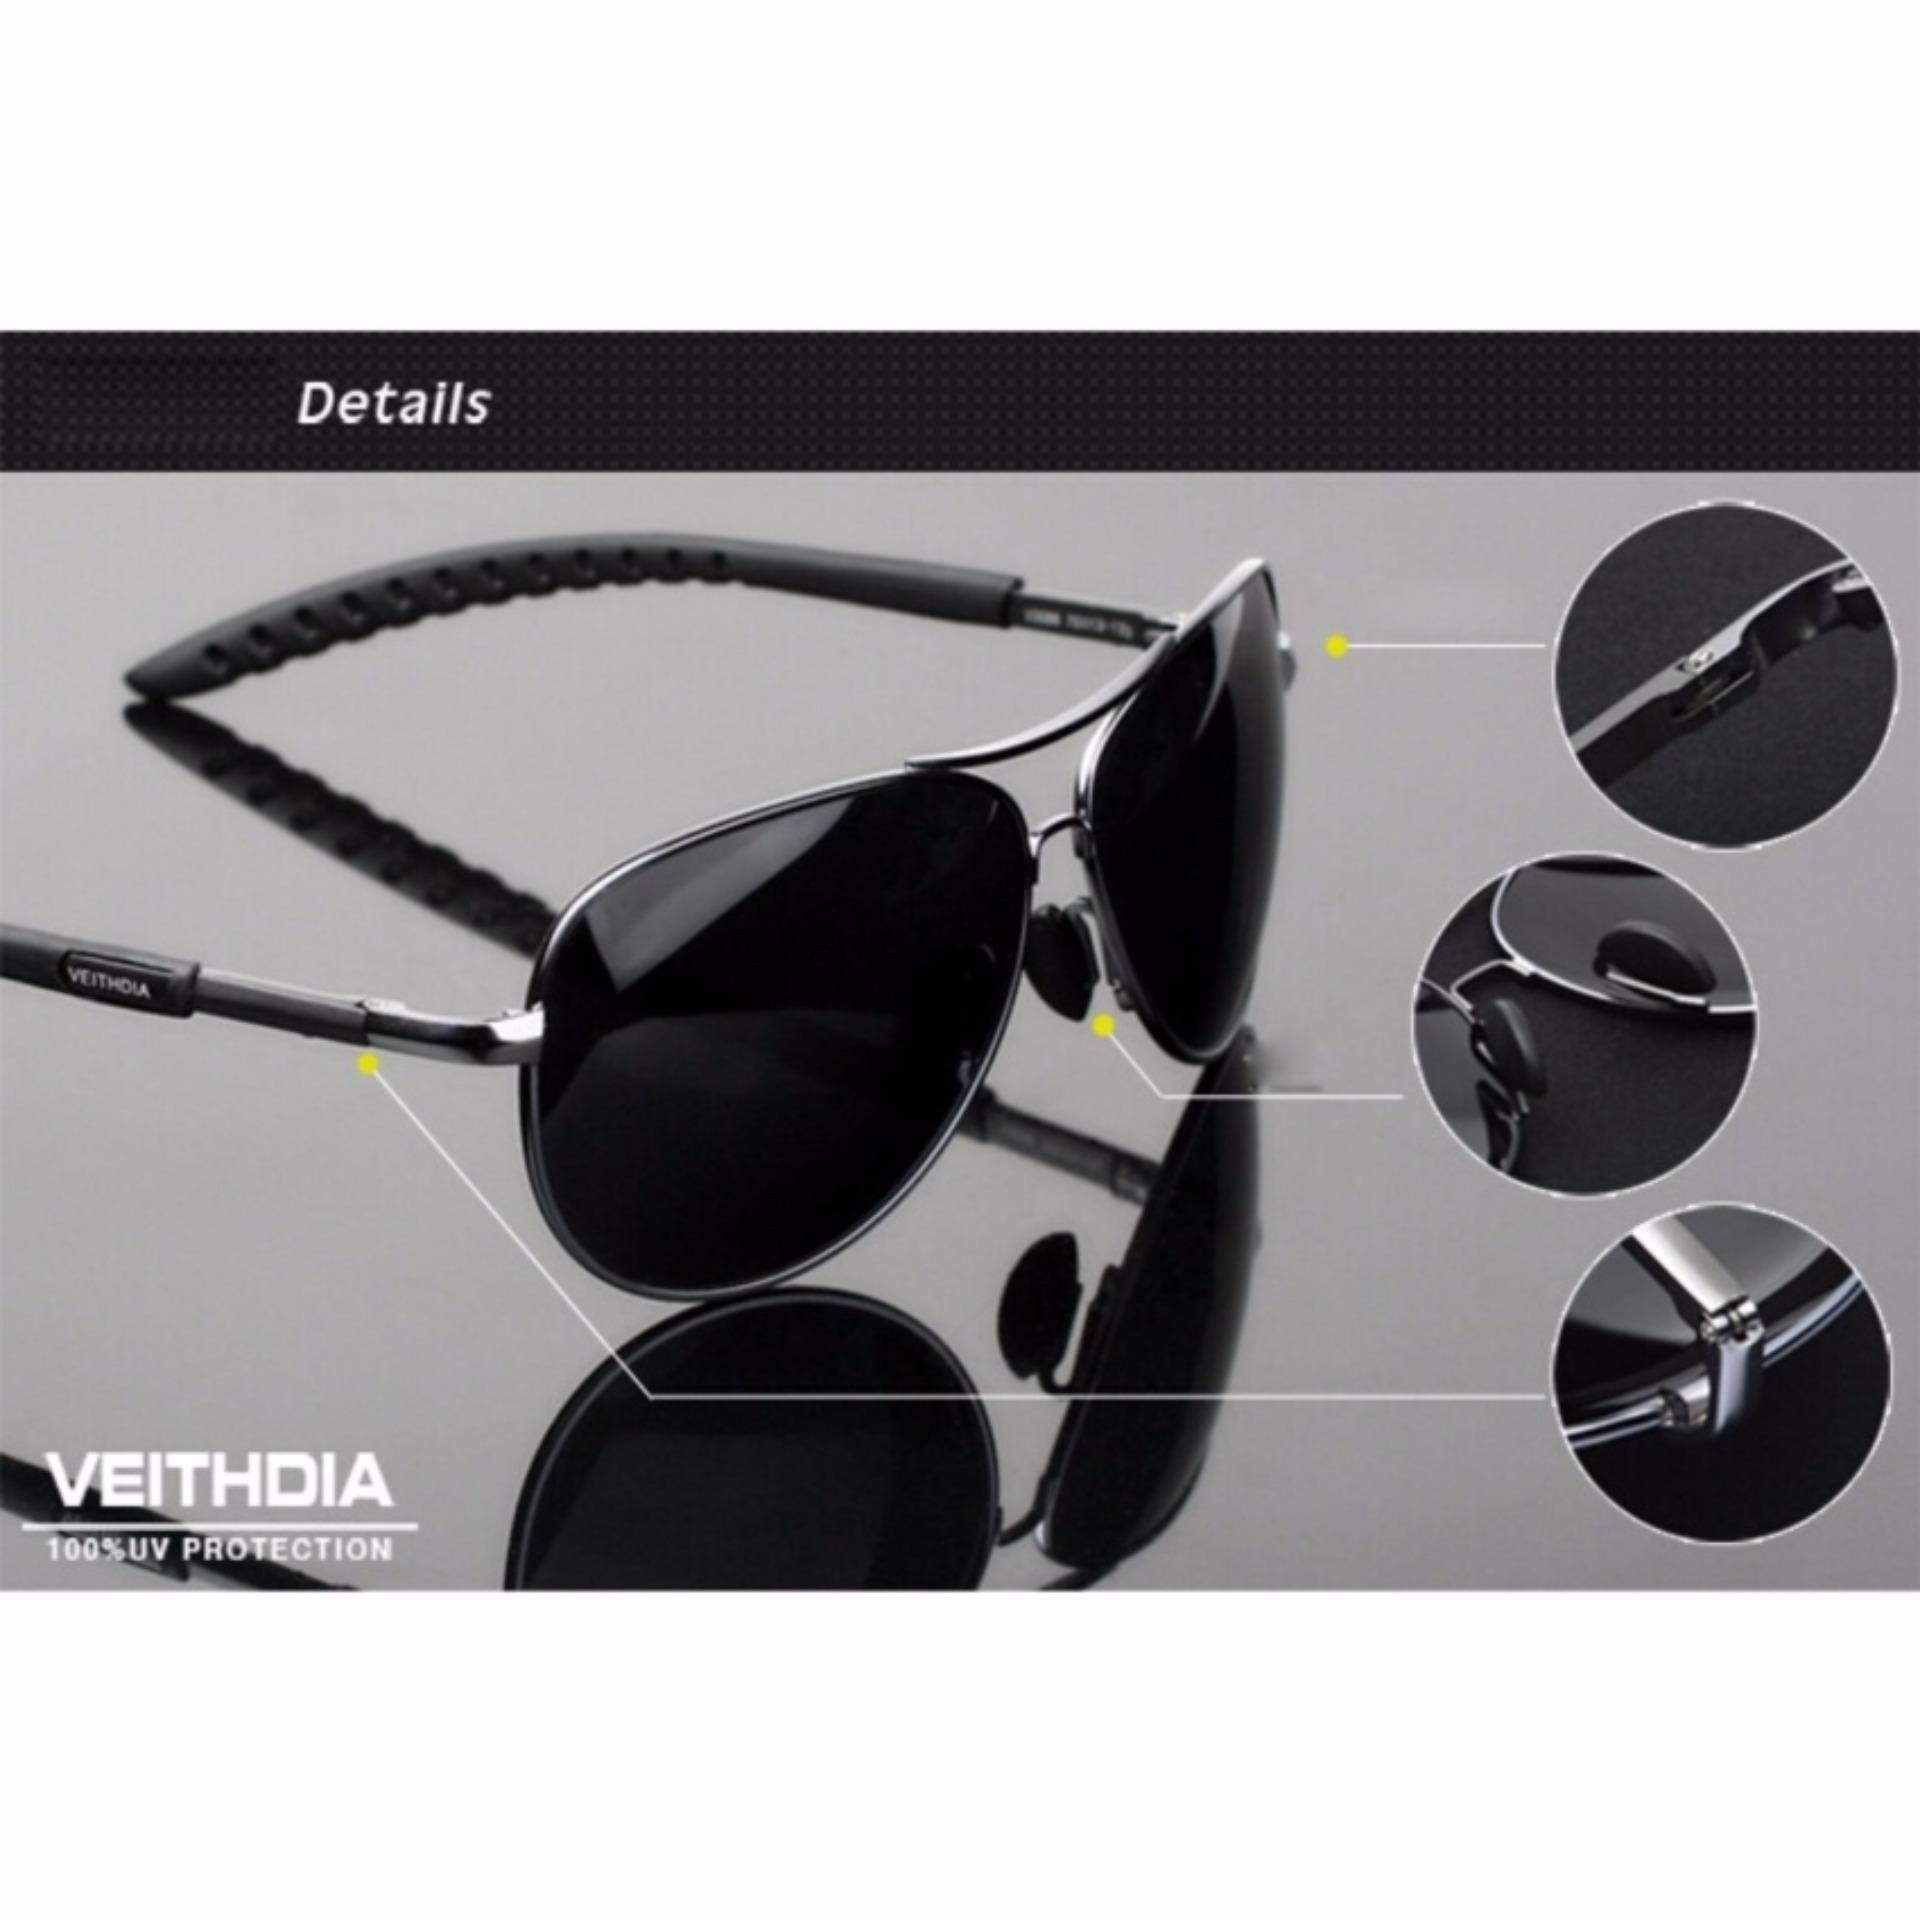 ... Fashion Classic Design Source · Veithdia Kacamata Aviator Pilot Polarized Sunglasses Hitam